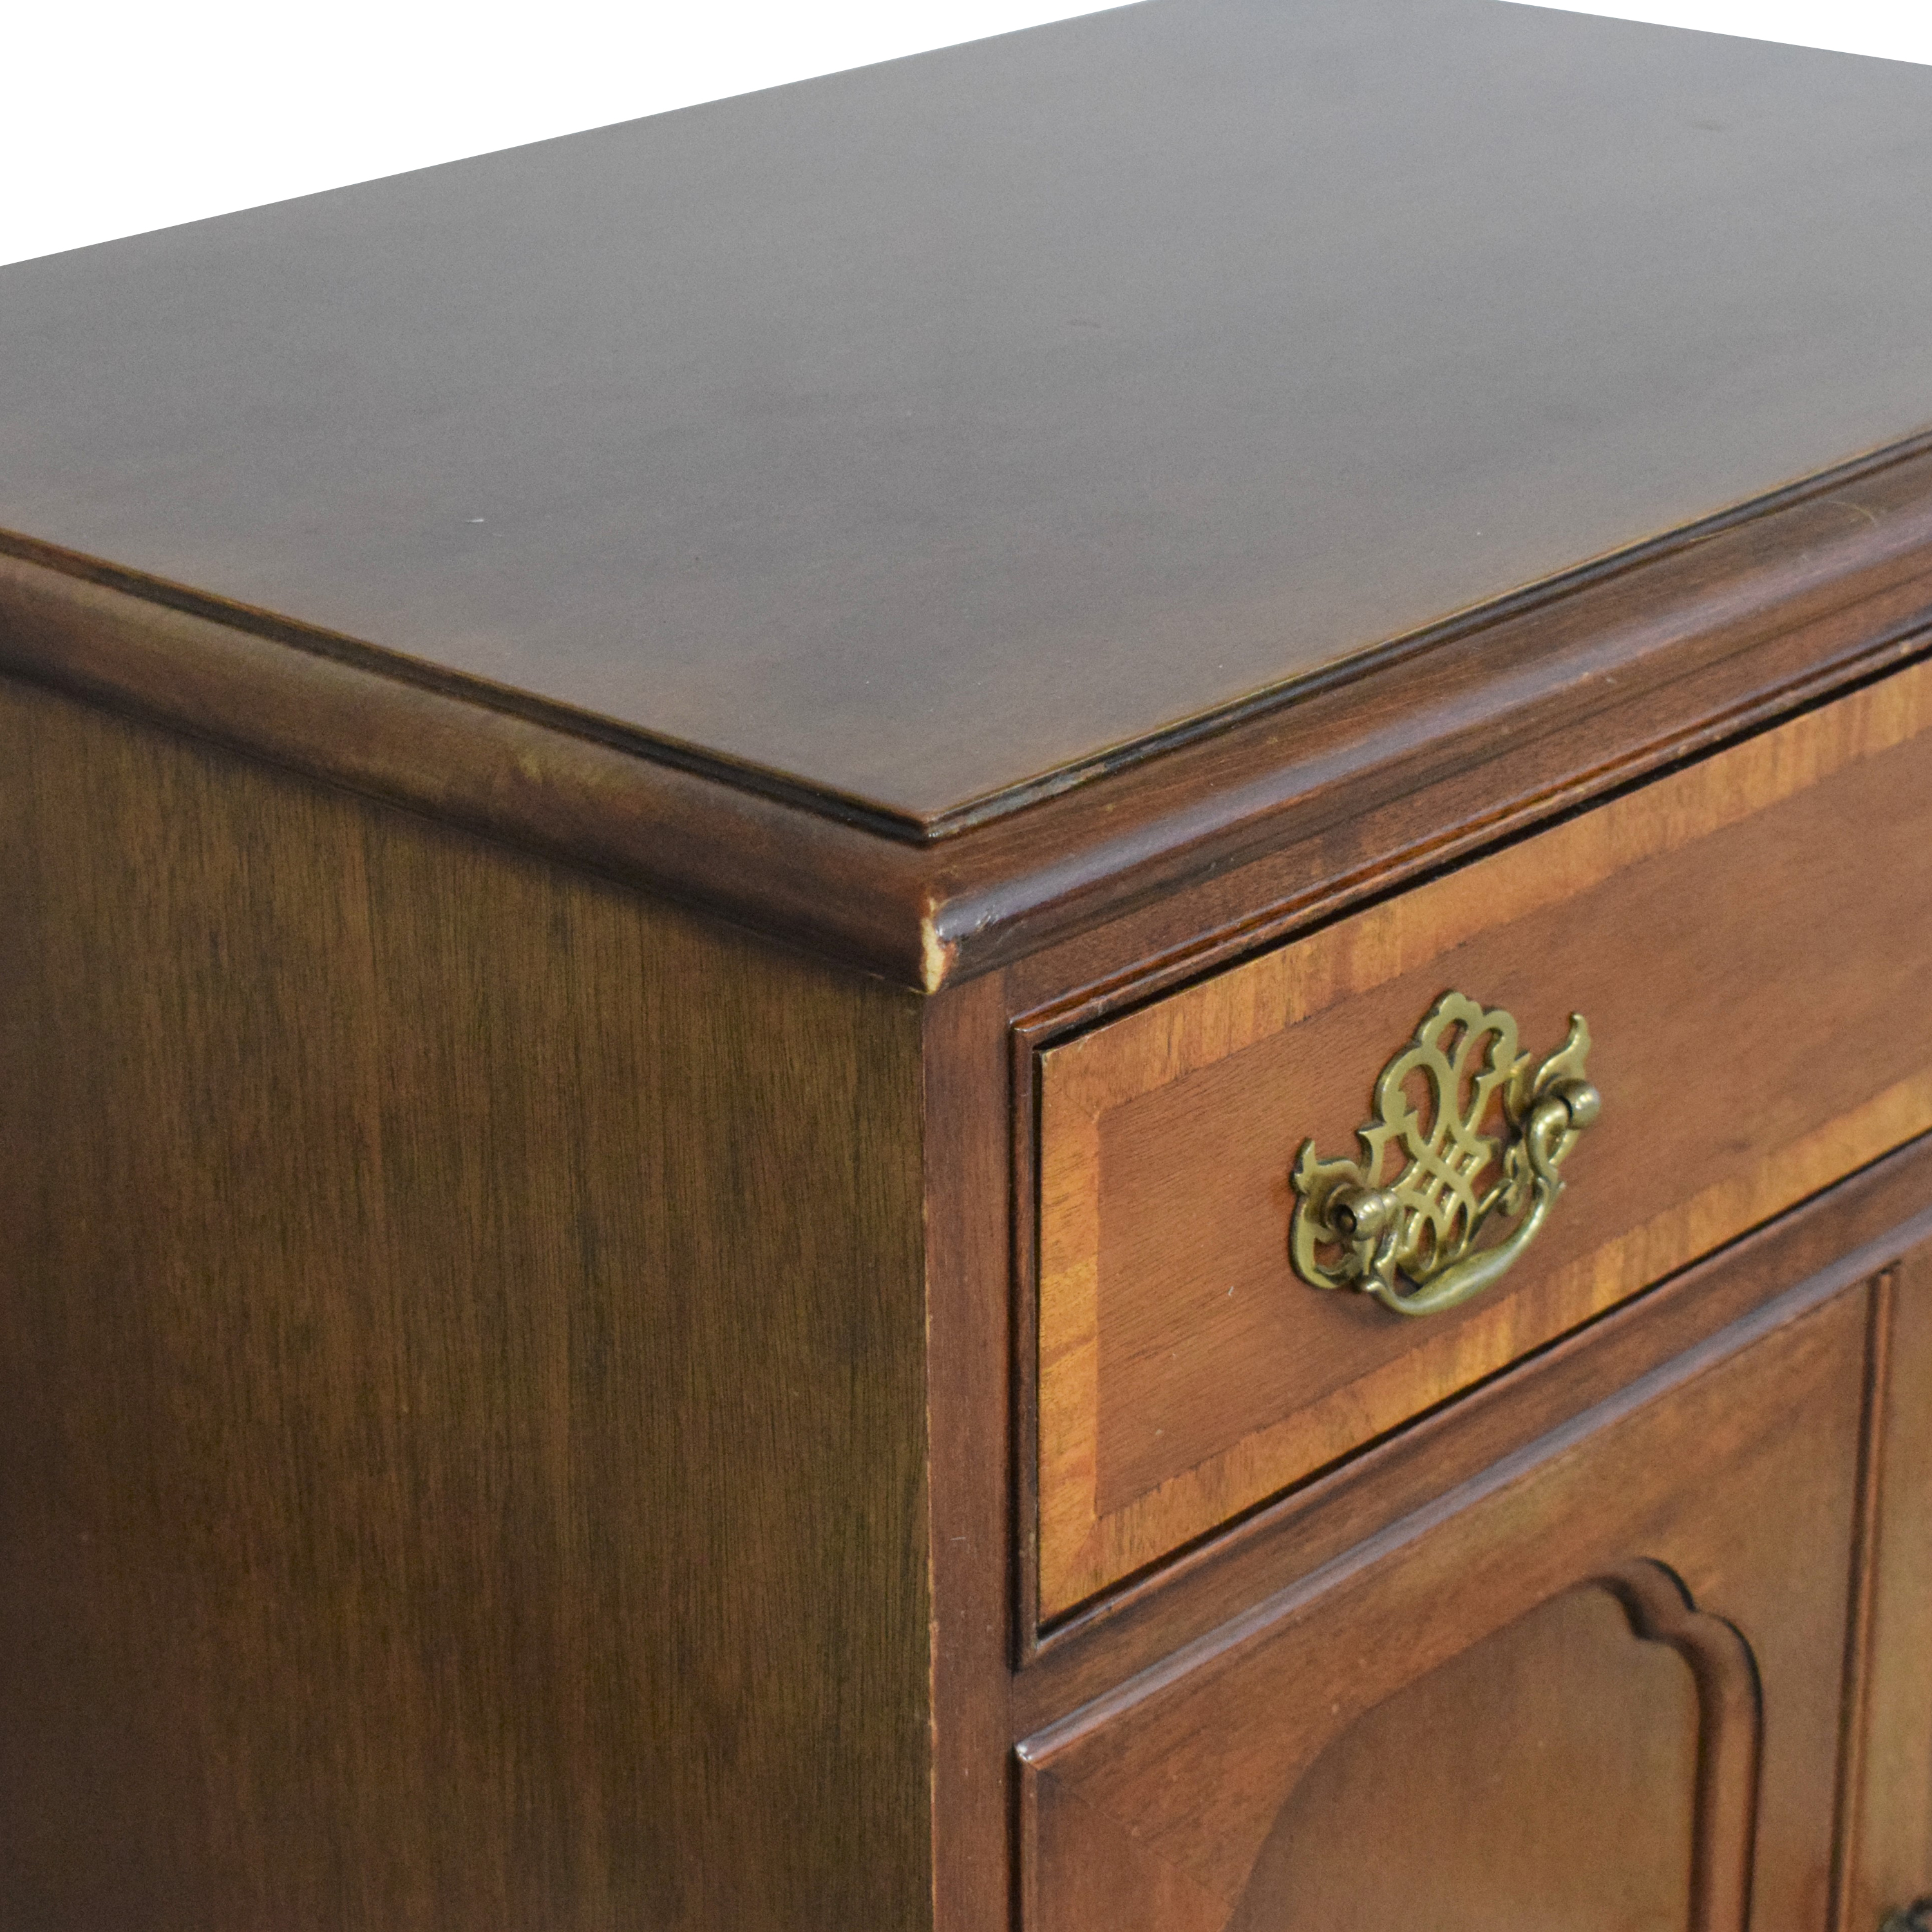 Hickory Chair Hickory Chair American Masterpiece Collection Nightstand dimensions